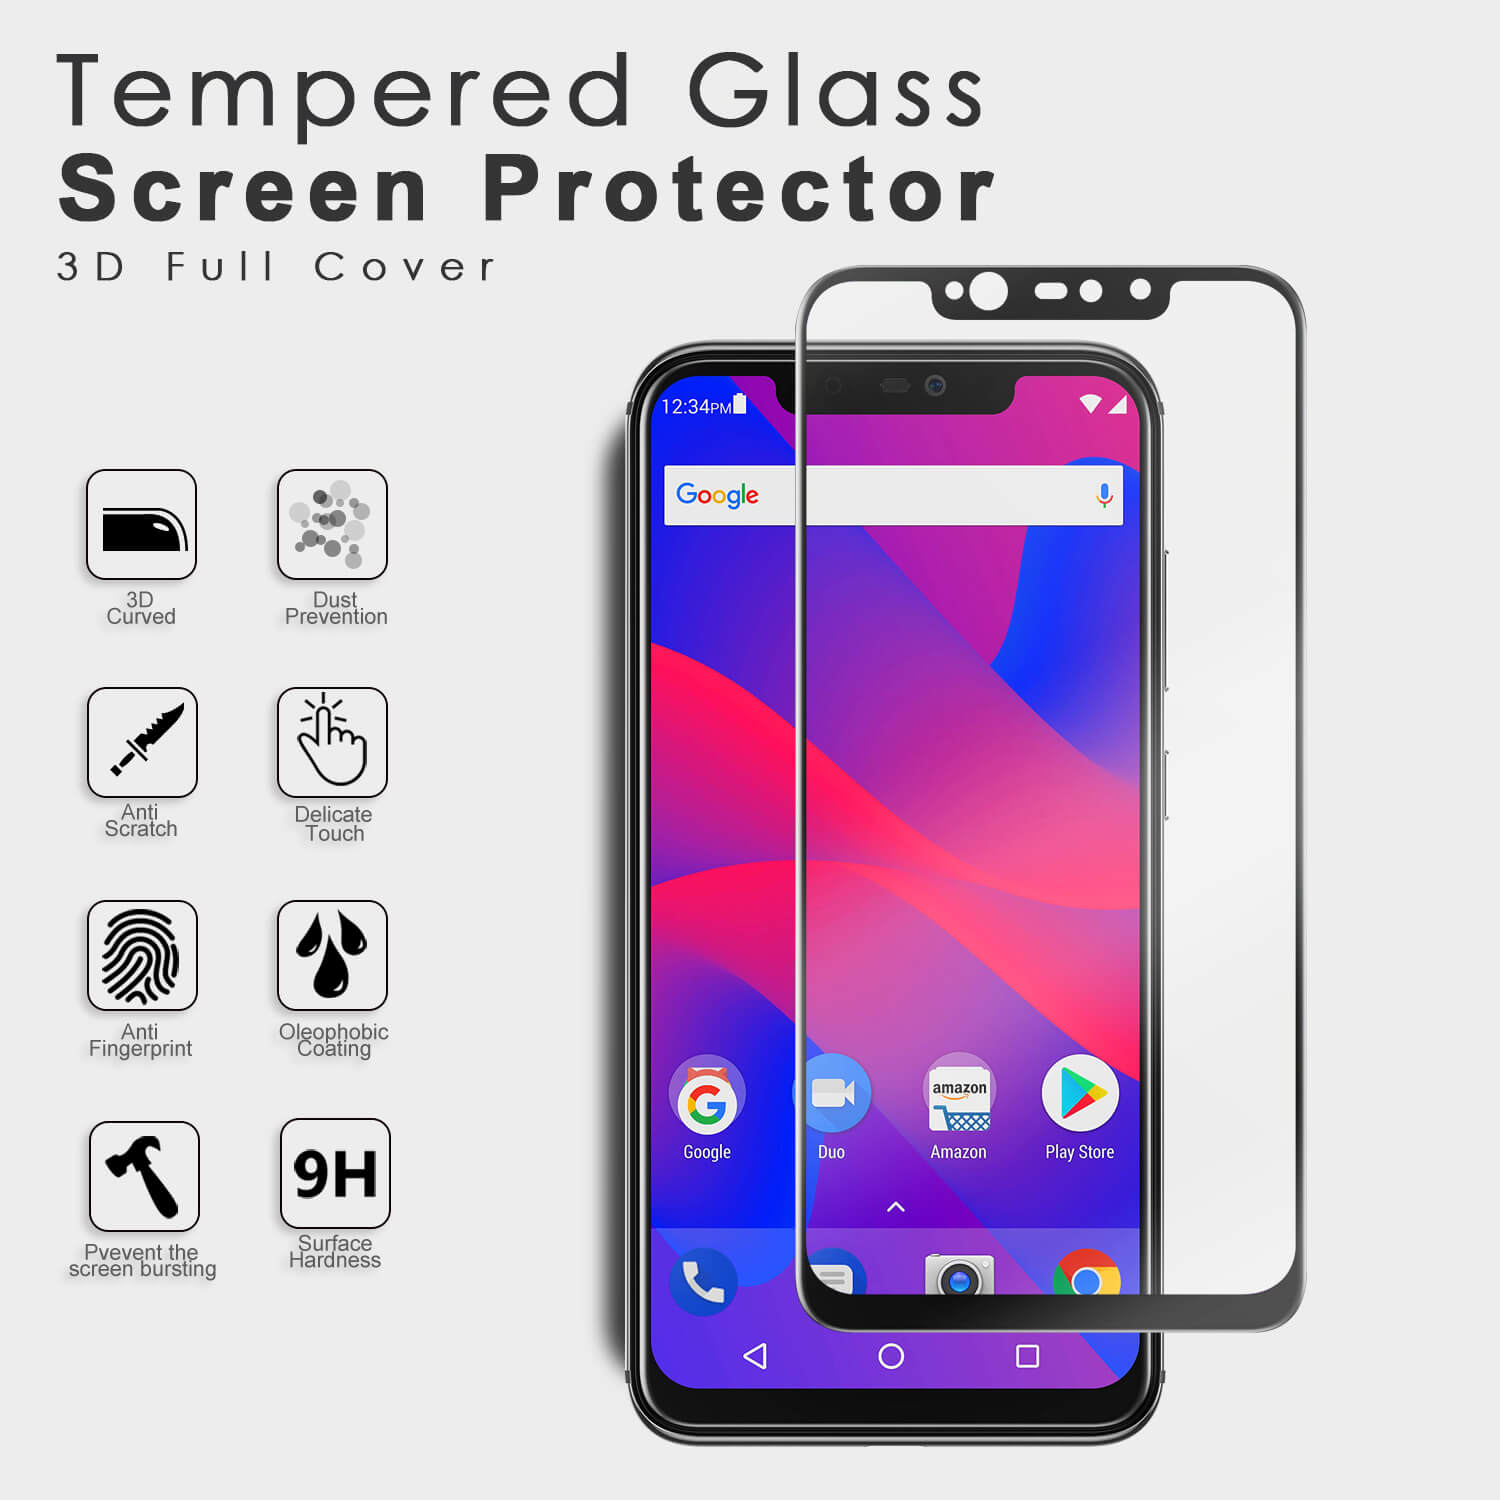 VMAX Blu Vivo Xi+ 3D Curved Full Size Tempered Glass Screen Protector